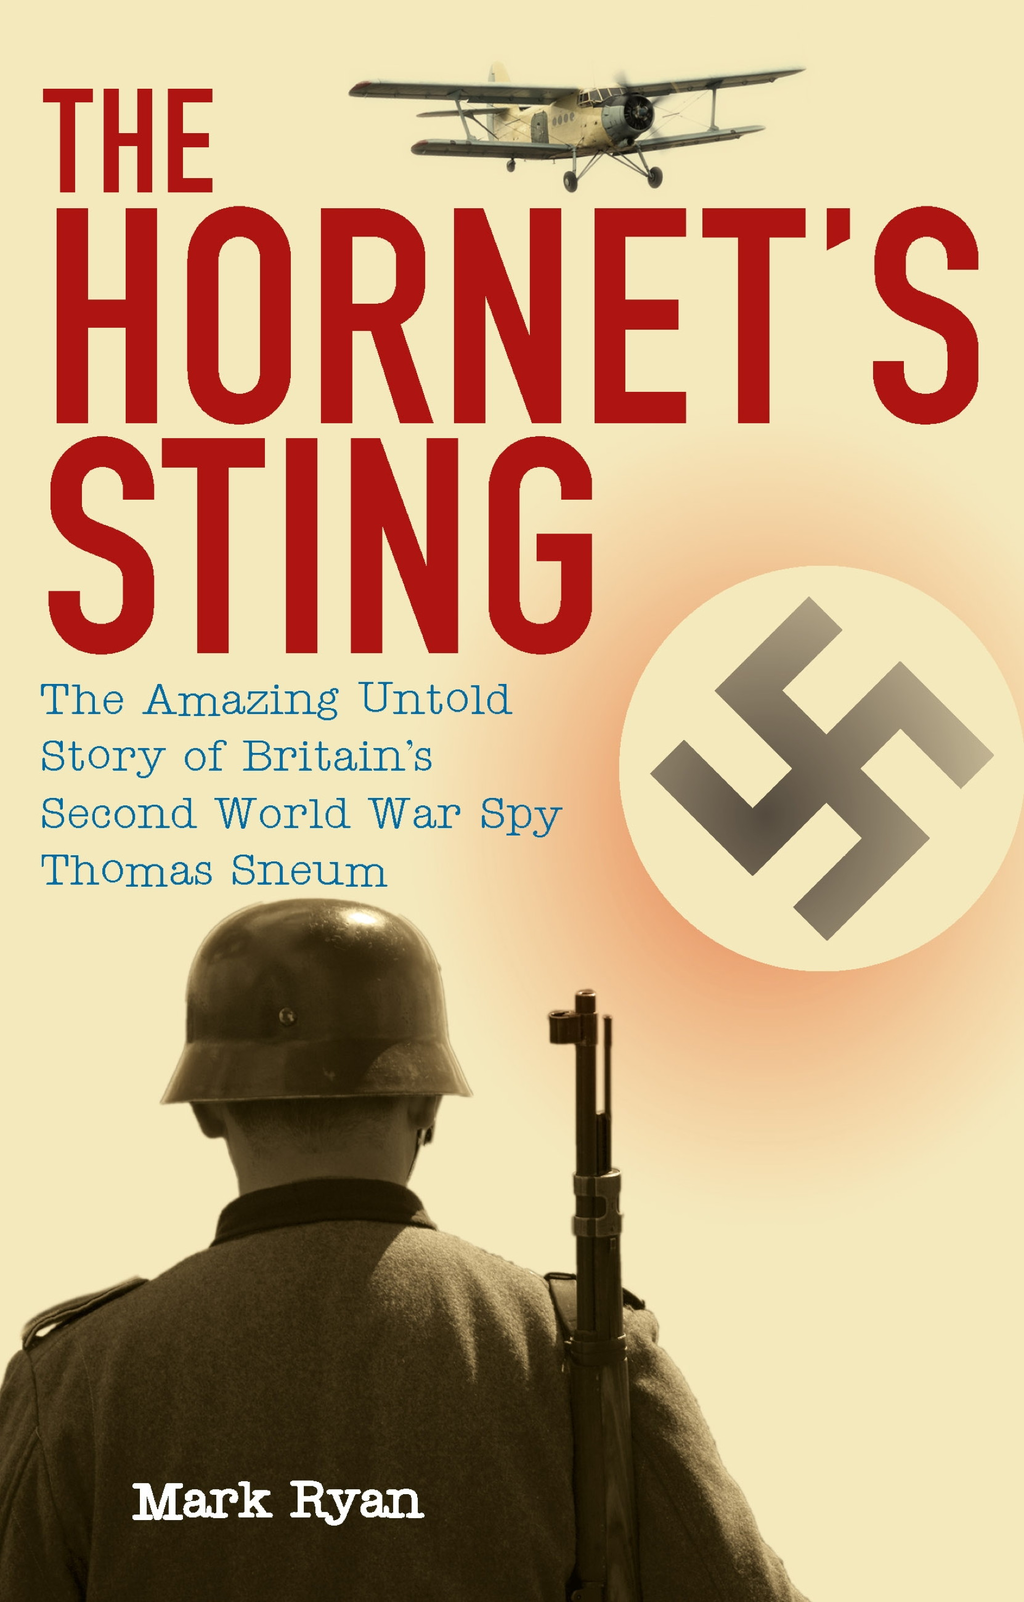 The Hornet's Sting The amazing untold story of Britain's Second World War spy Thomas Sneum